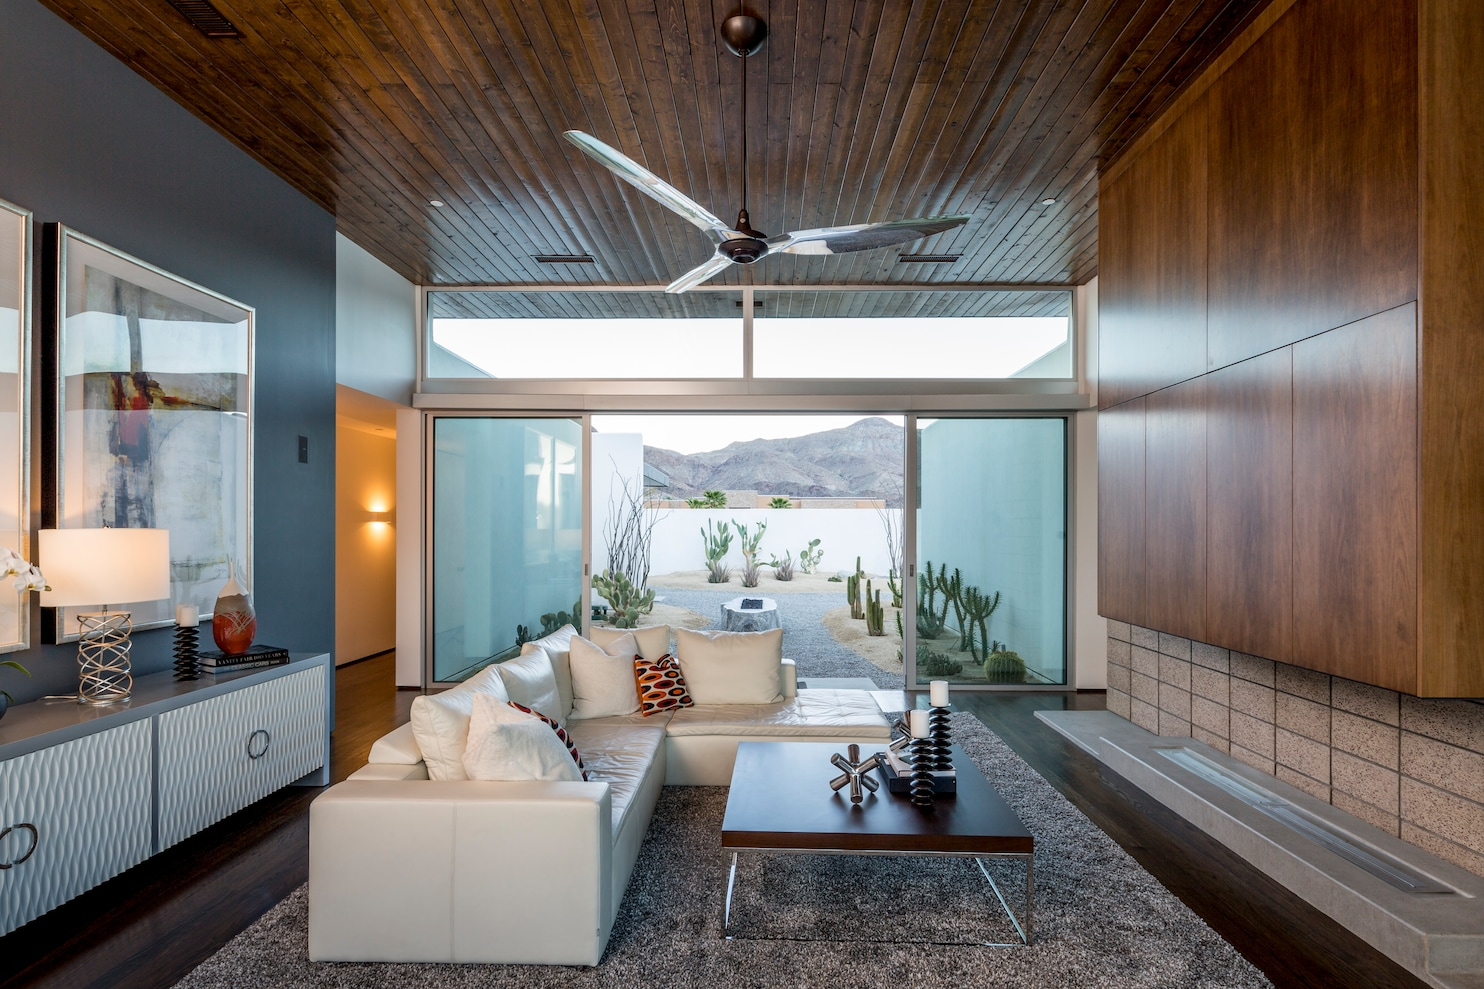 Upscale Ceiling Fan Are Ceiling Fans The Kiss Of Death For Design Not Necessarily